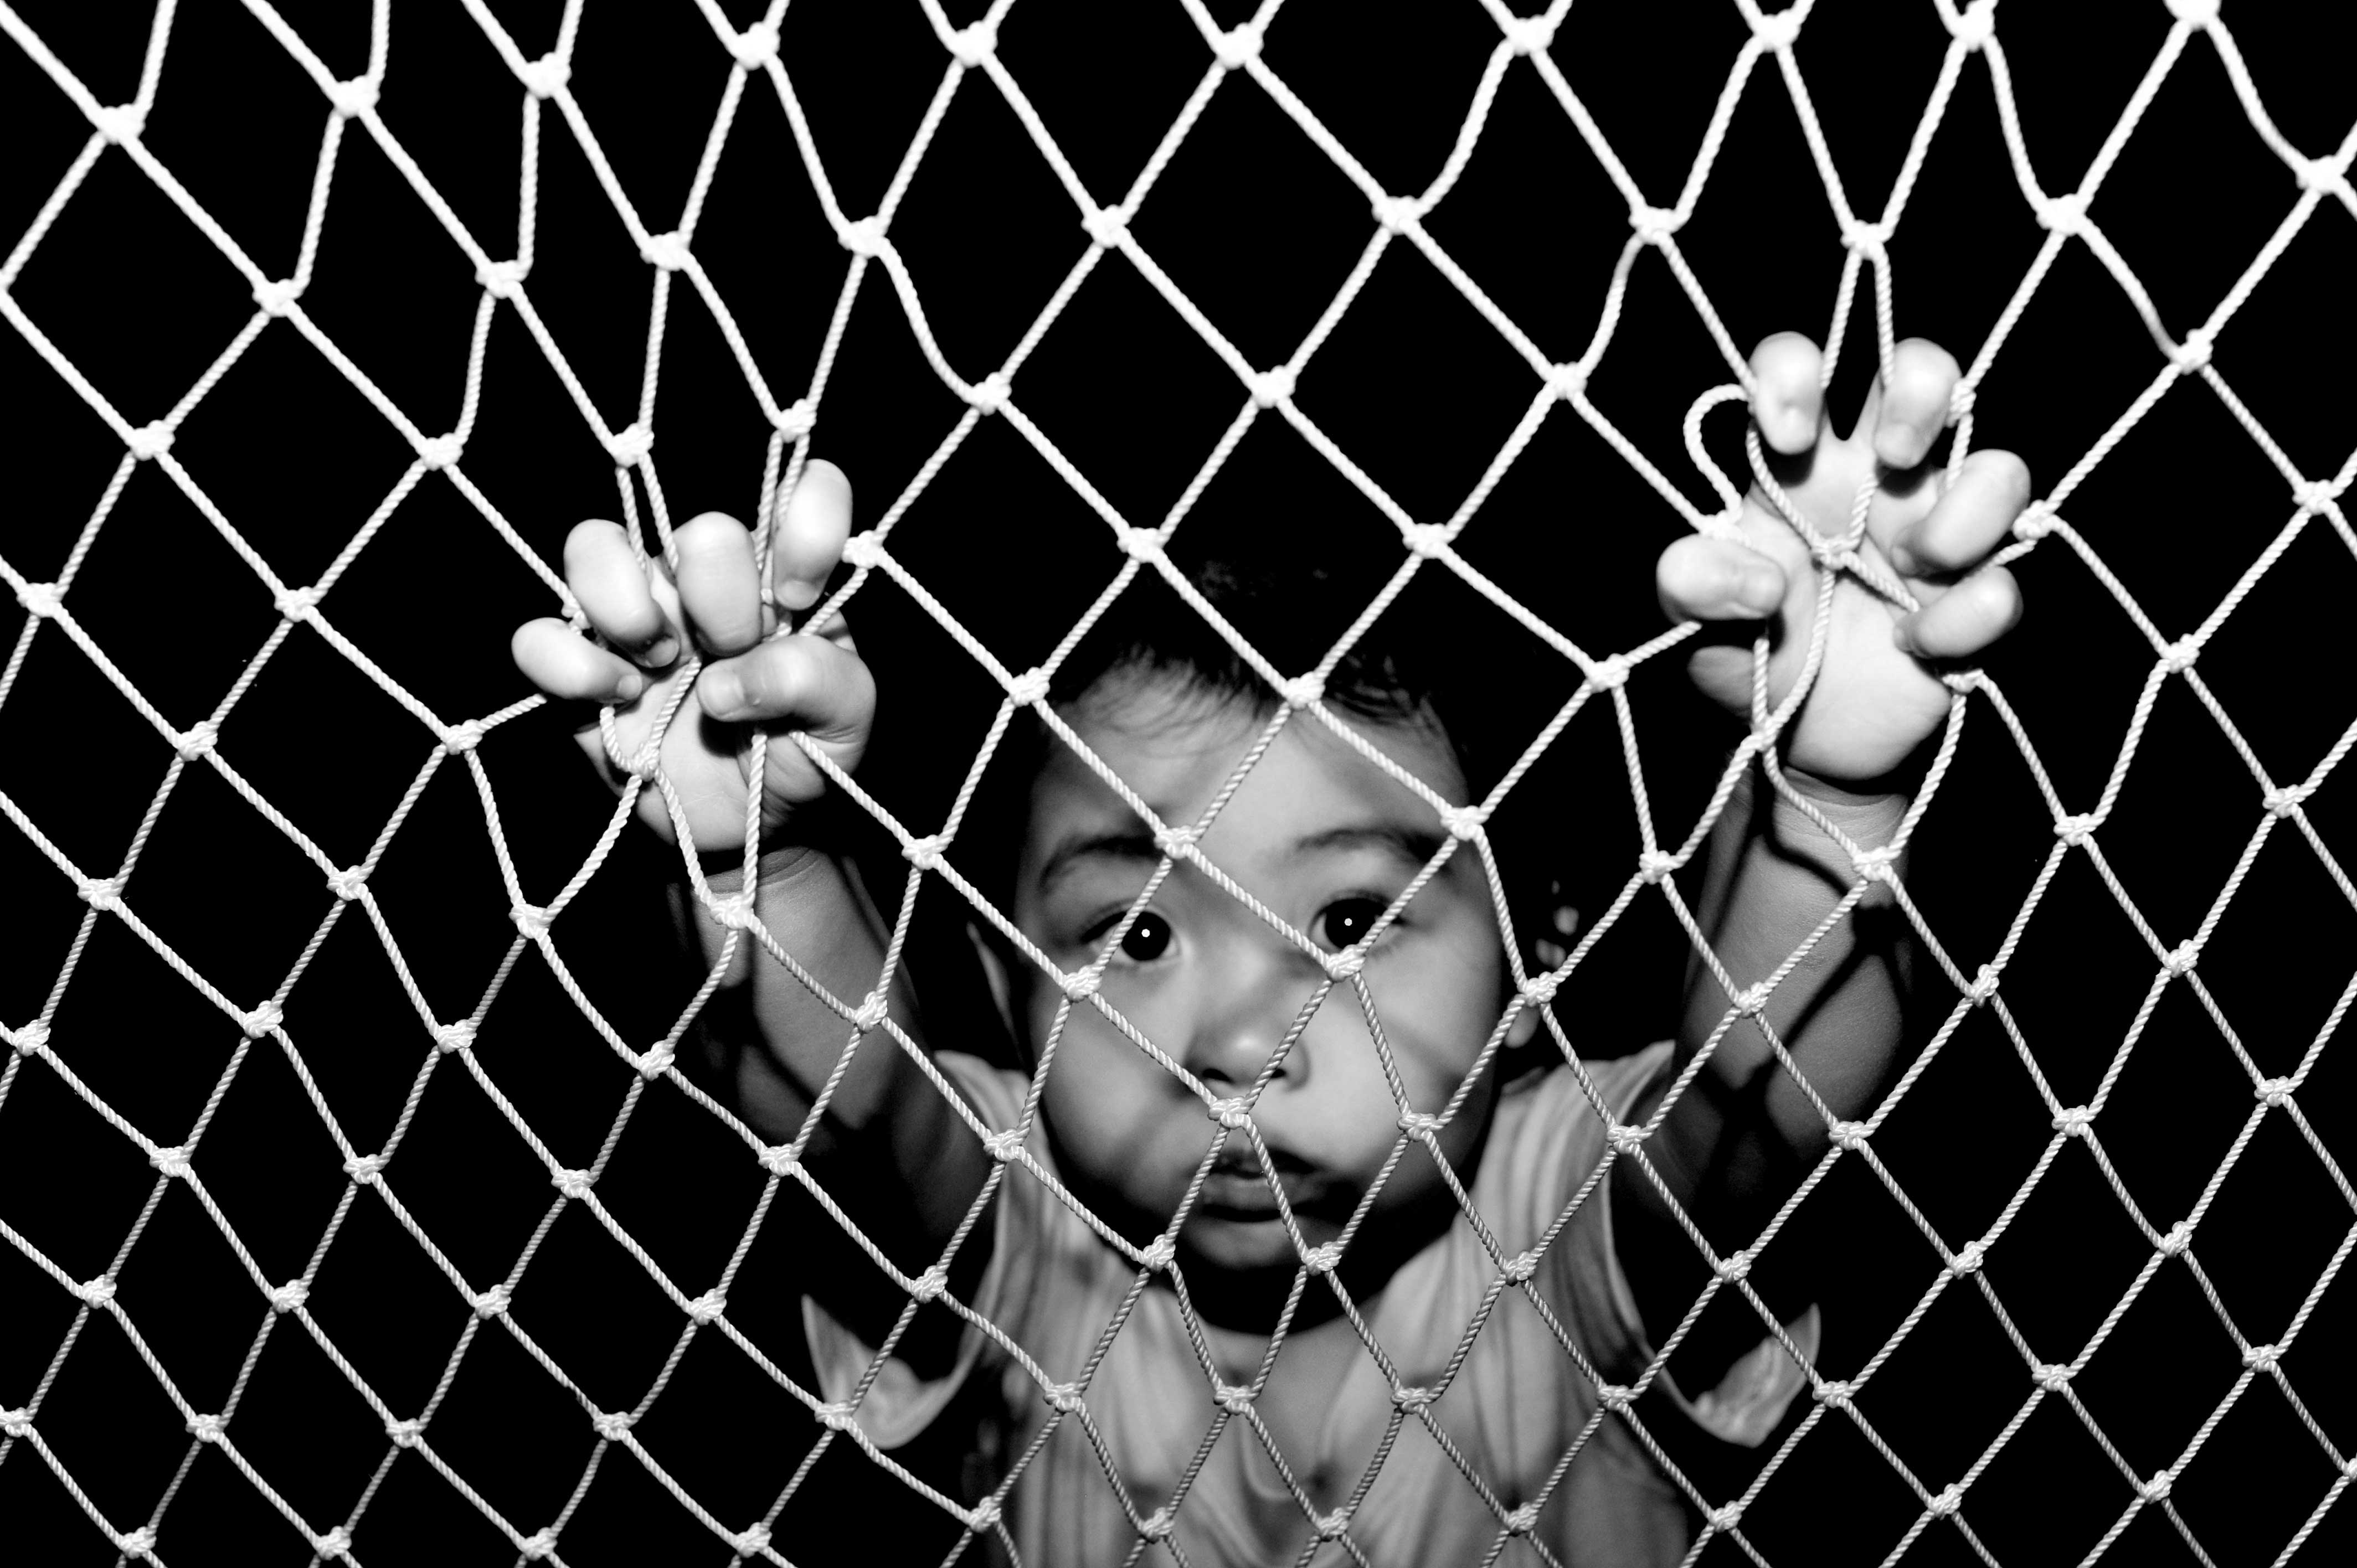 One Small Step Forward On Children In Detention